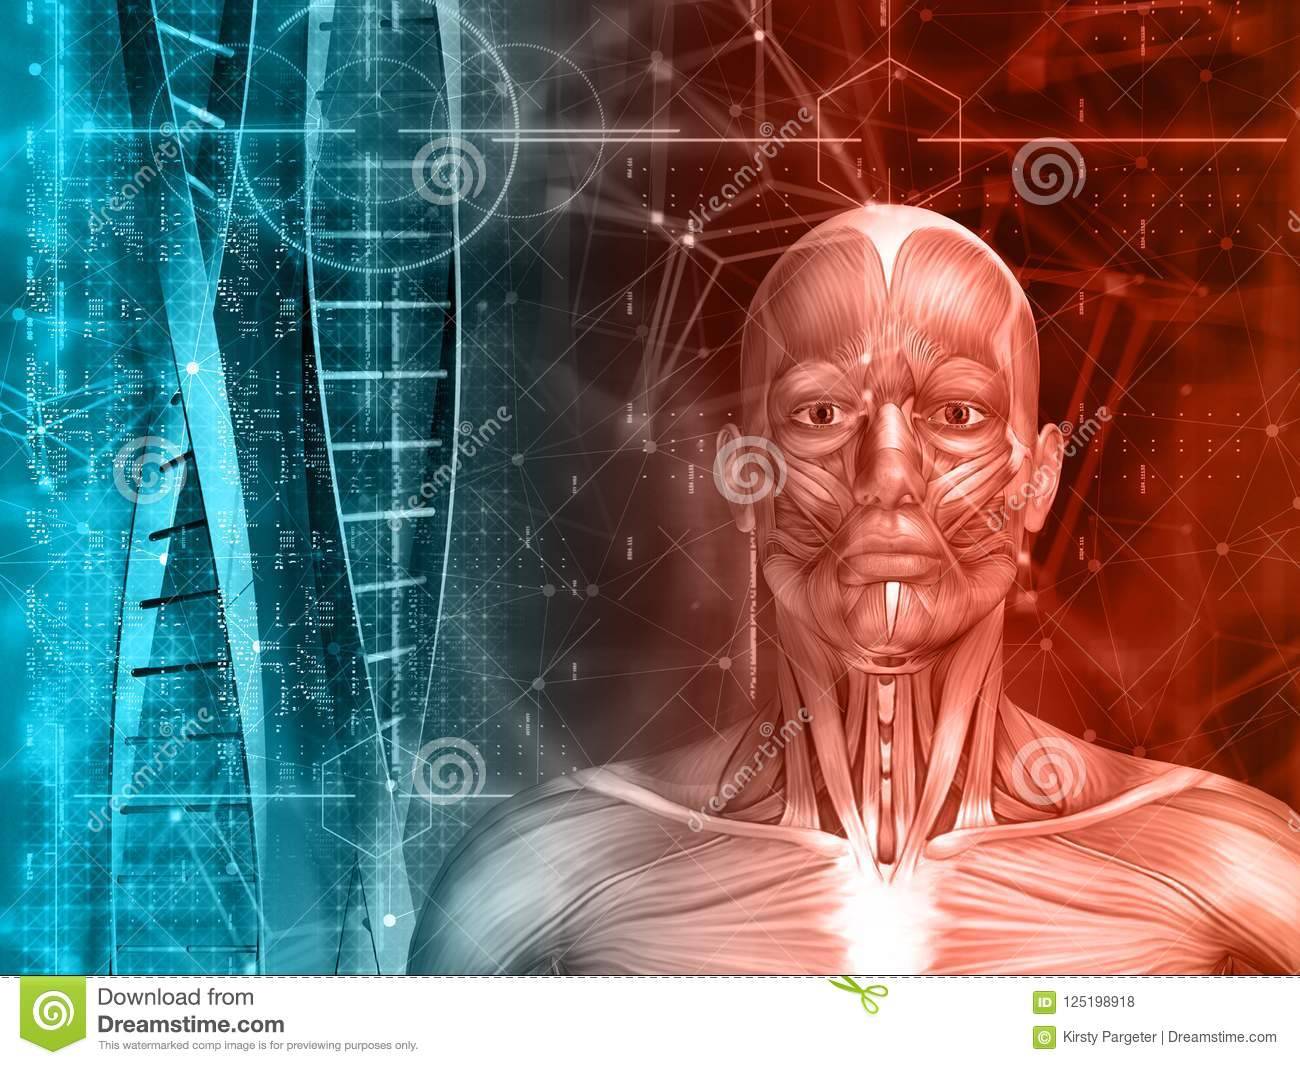 3d medical background with male figure, dna strands and code